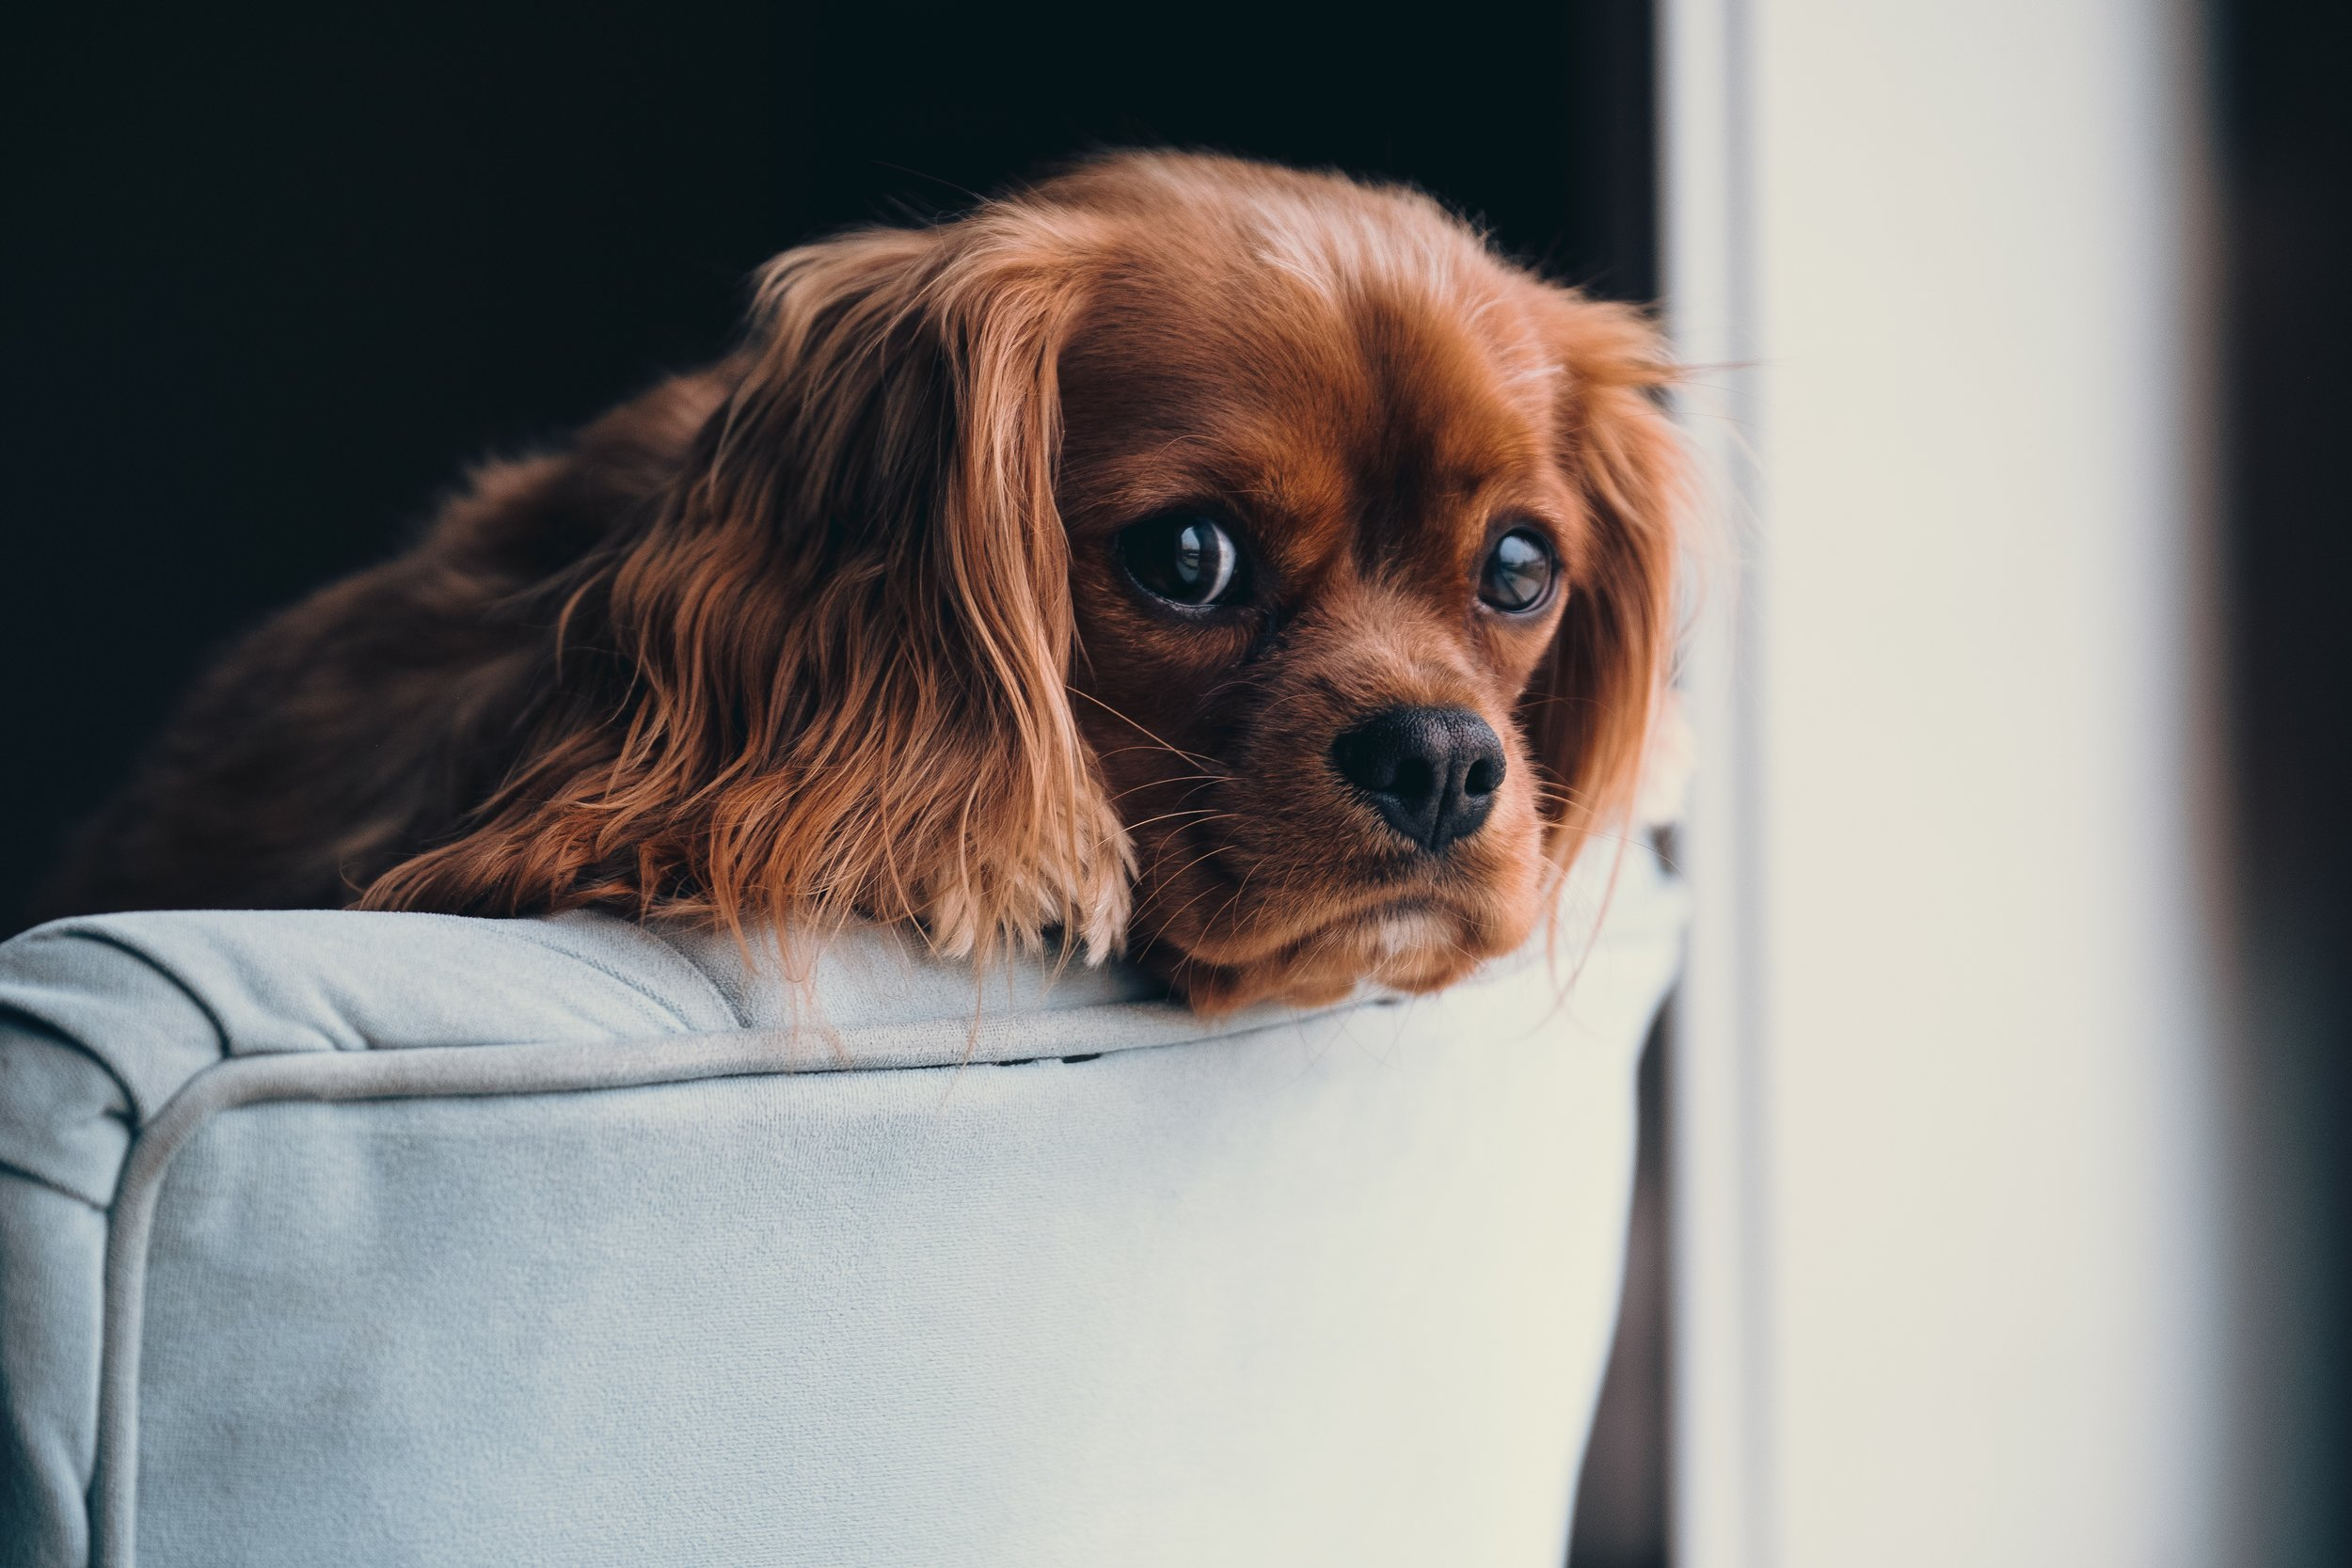 red cocker spaniel puppy on sofa A. Branch Up cW